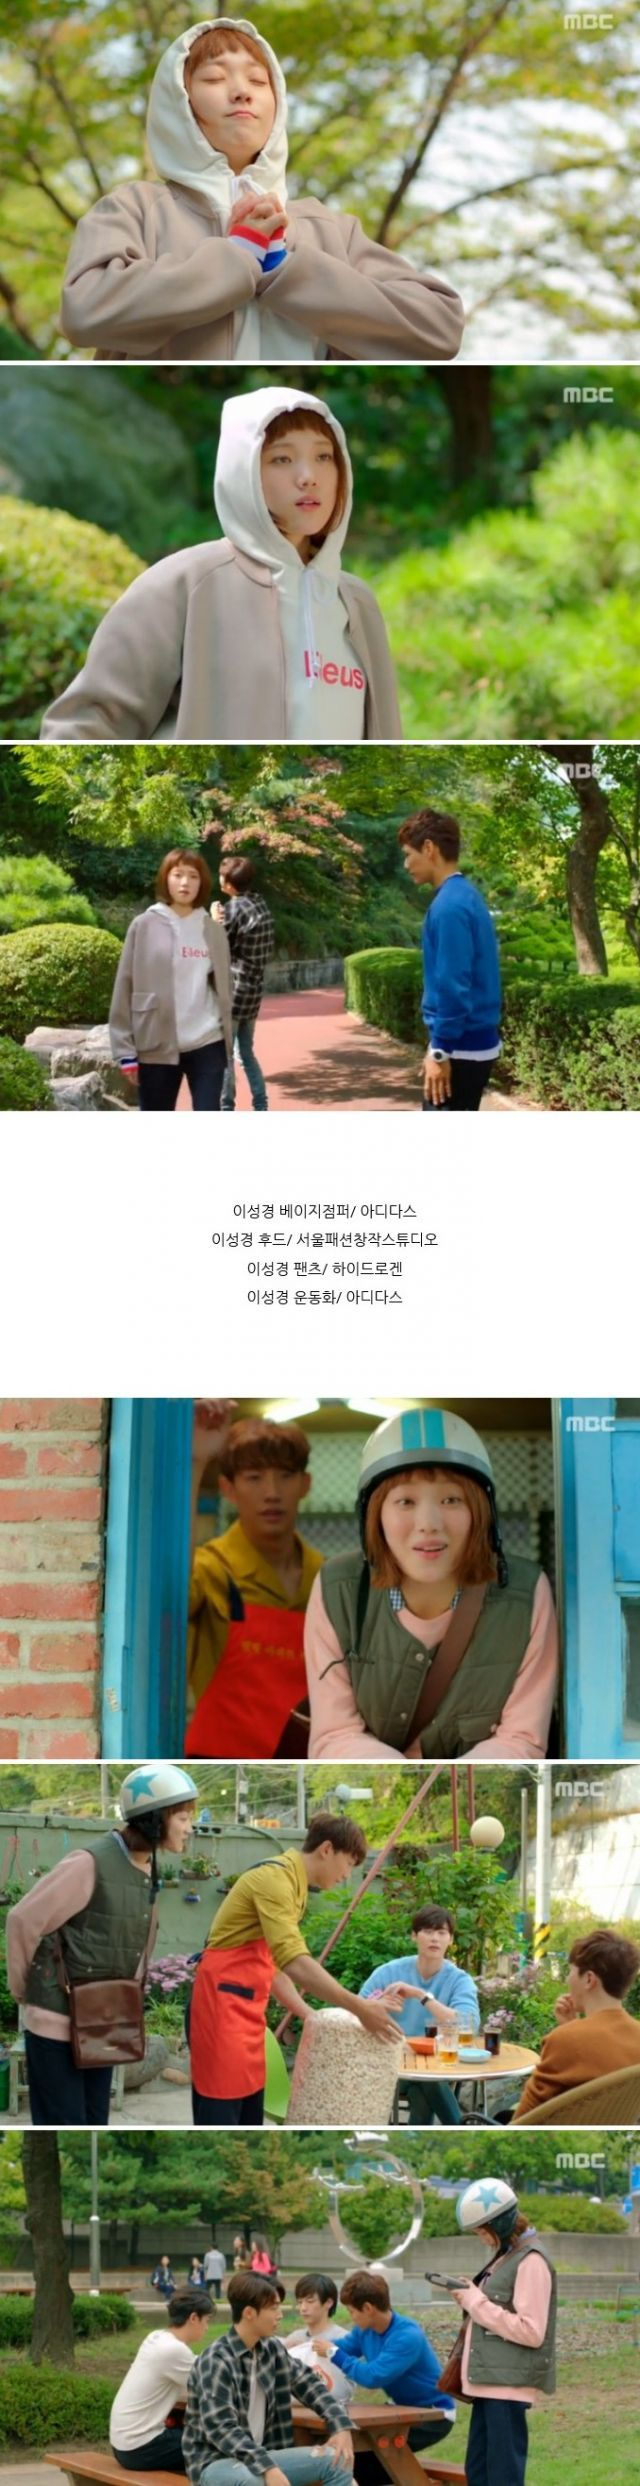 [Spoiler] Added episode 2 captures for the #kdrama 'Weightlifting Fairy Kim Bok-joo'